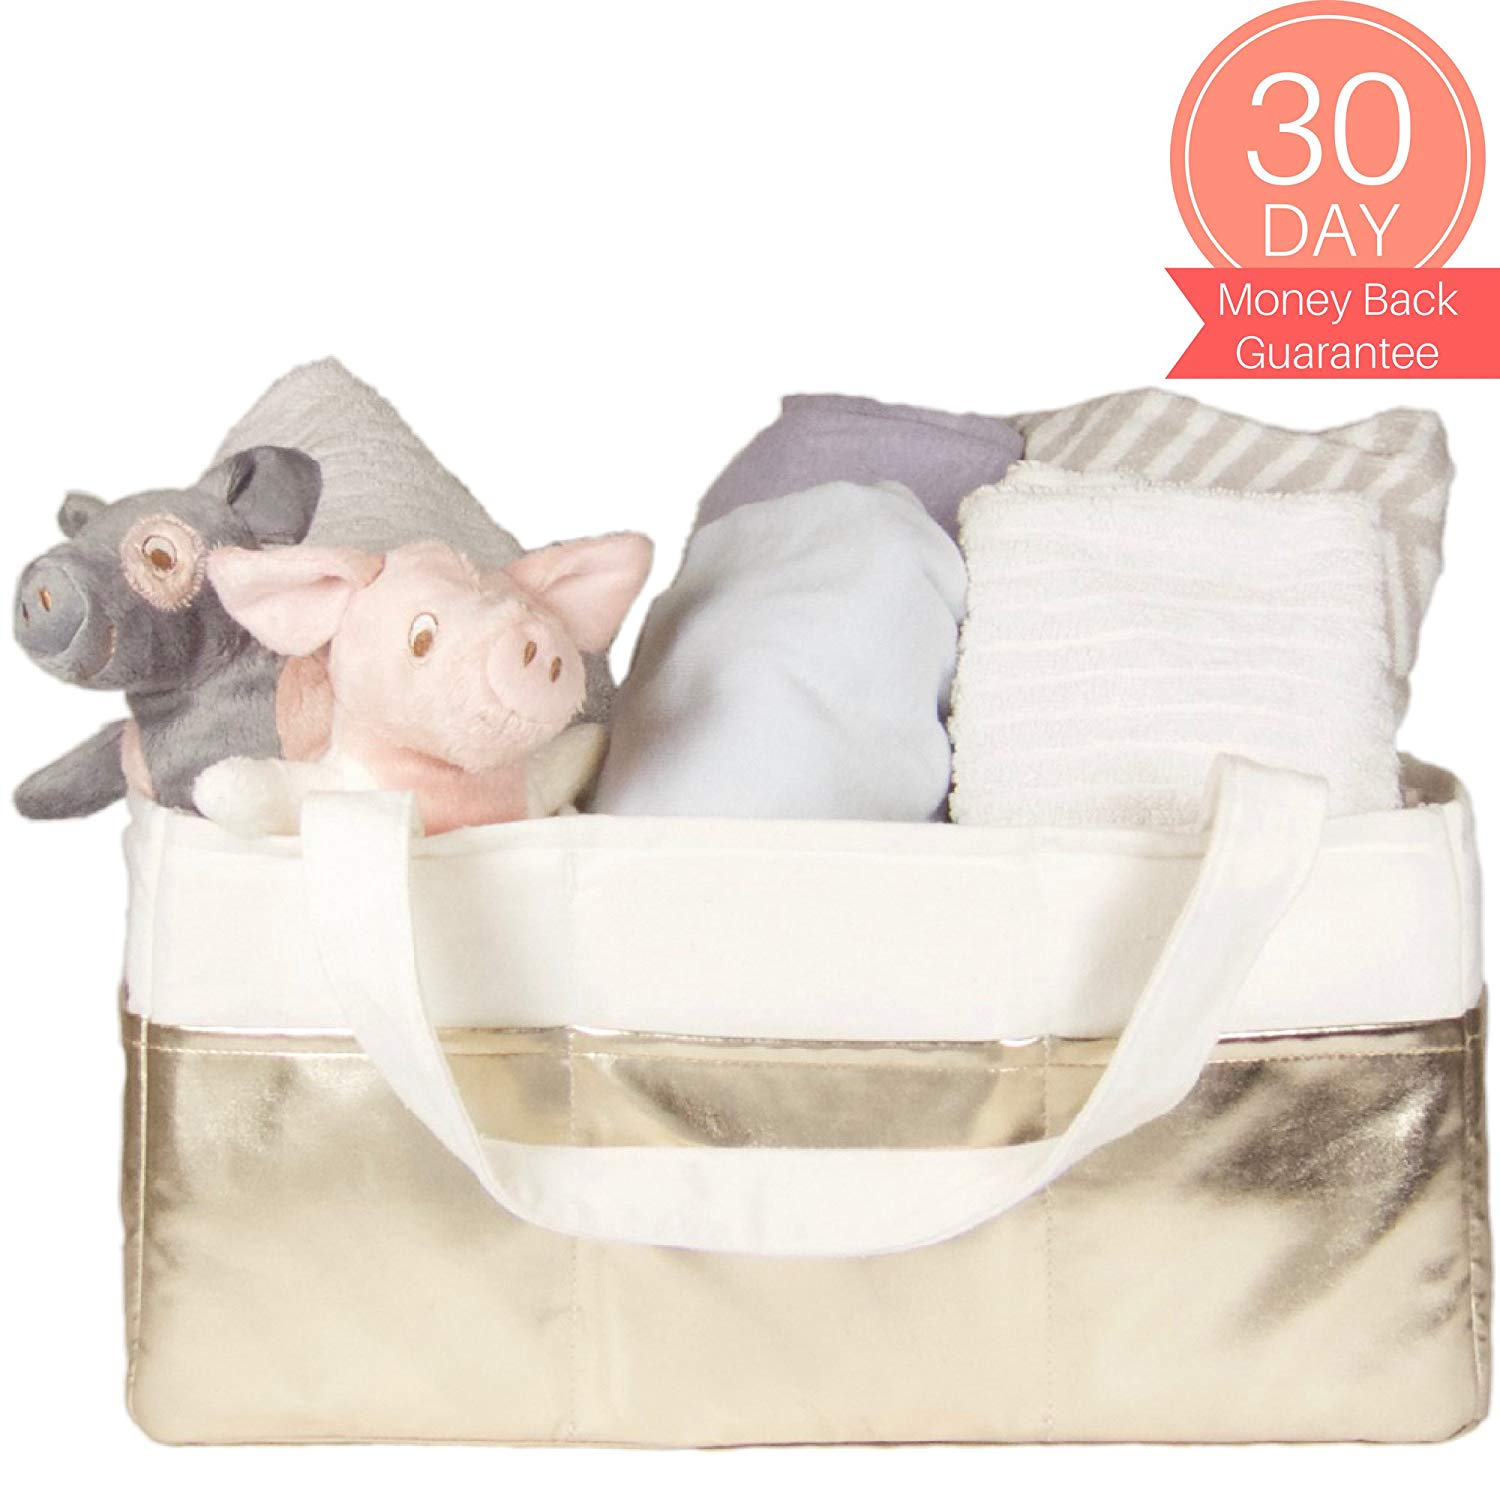 Diaper Caddy Organizer Large - Baby Basket for Nursery | Nursery Storage Baskets | Diaper Organizer for Changing Table Girl & Boy | Baby Shower Gift Basket White & Gold